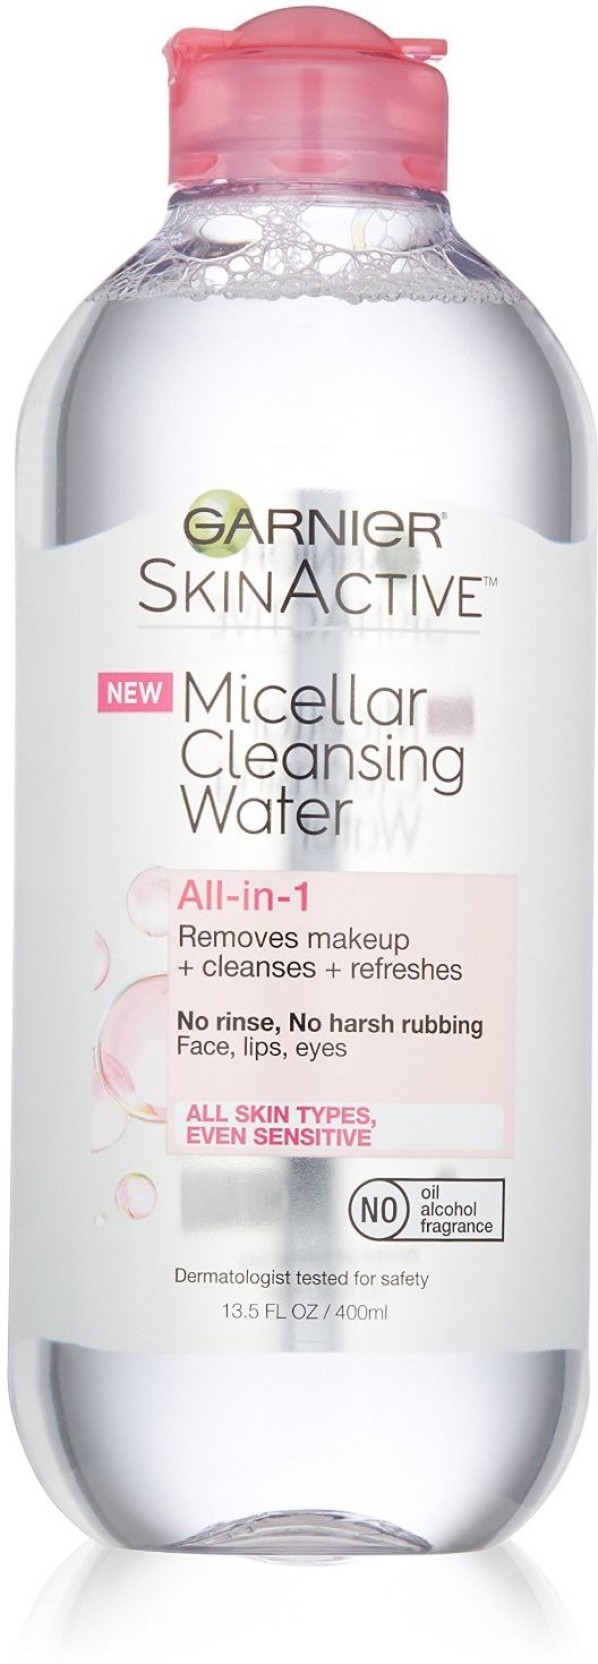 Garnier Skinactive Micellar Cleansing Water Price In India Buy 125ml Share